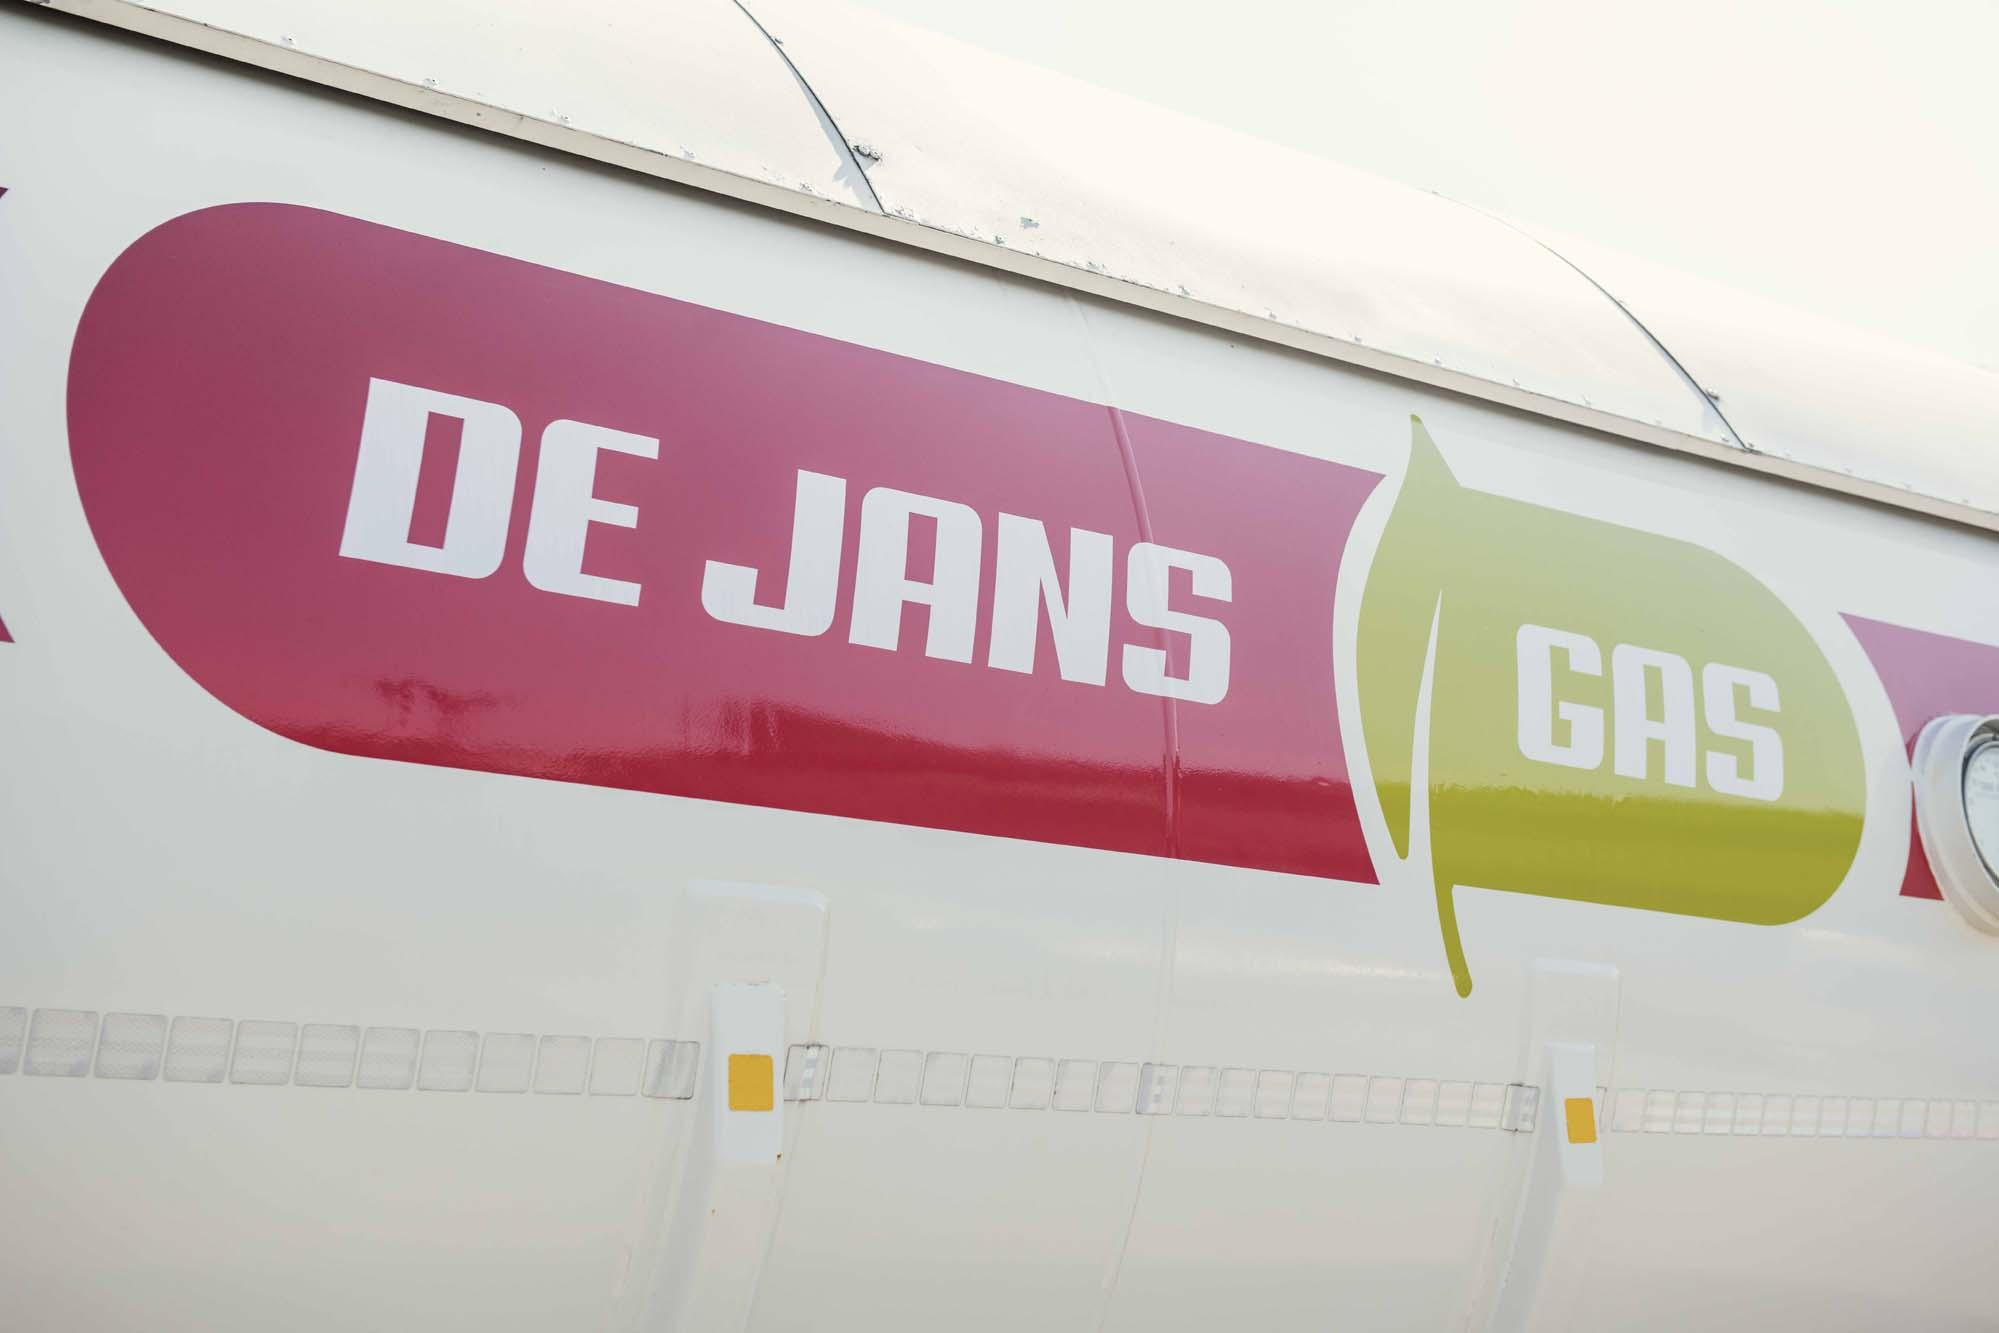 Over De Jans Gas